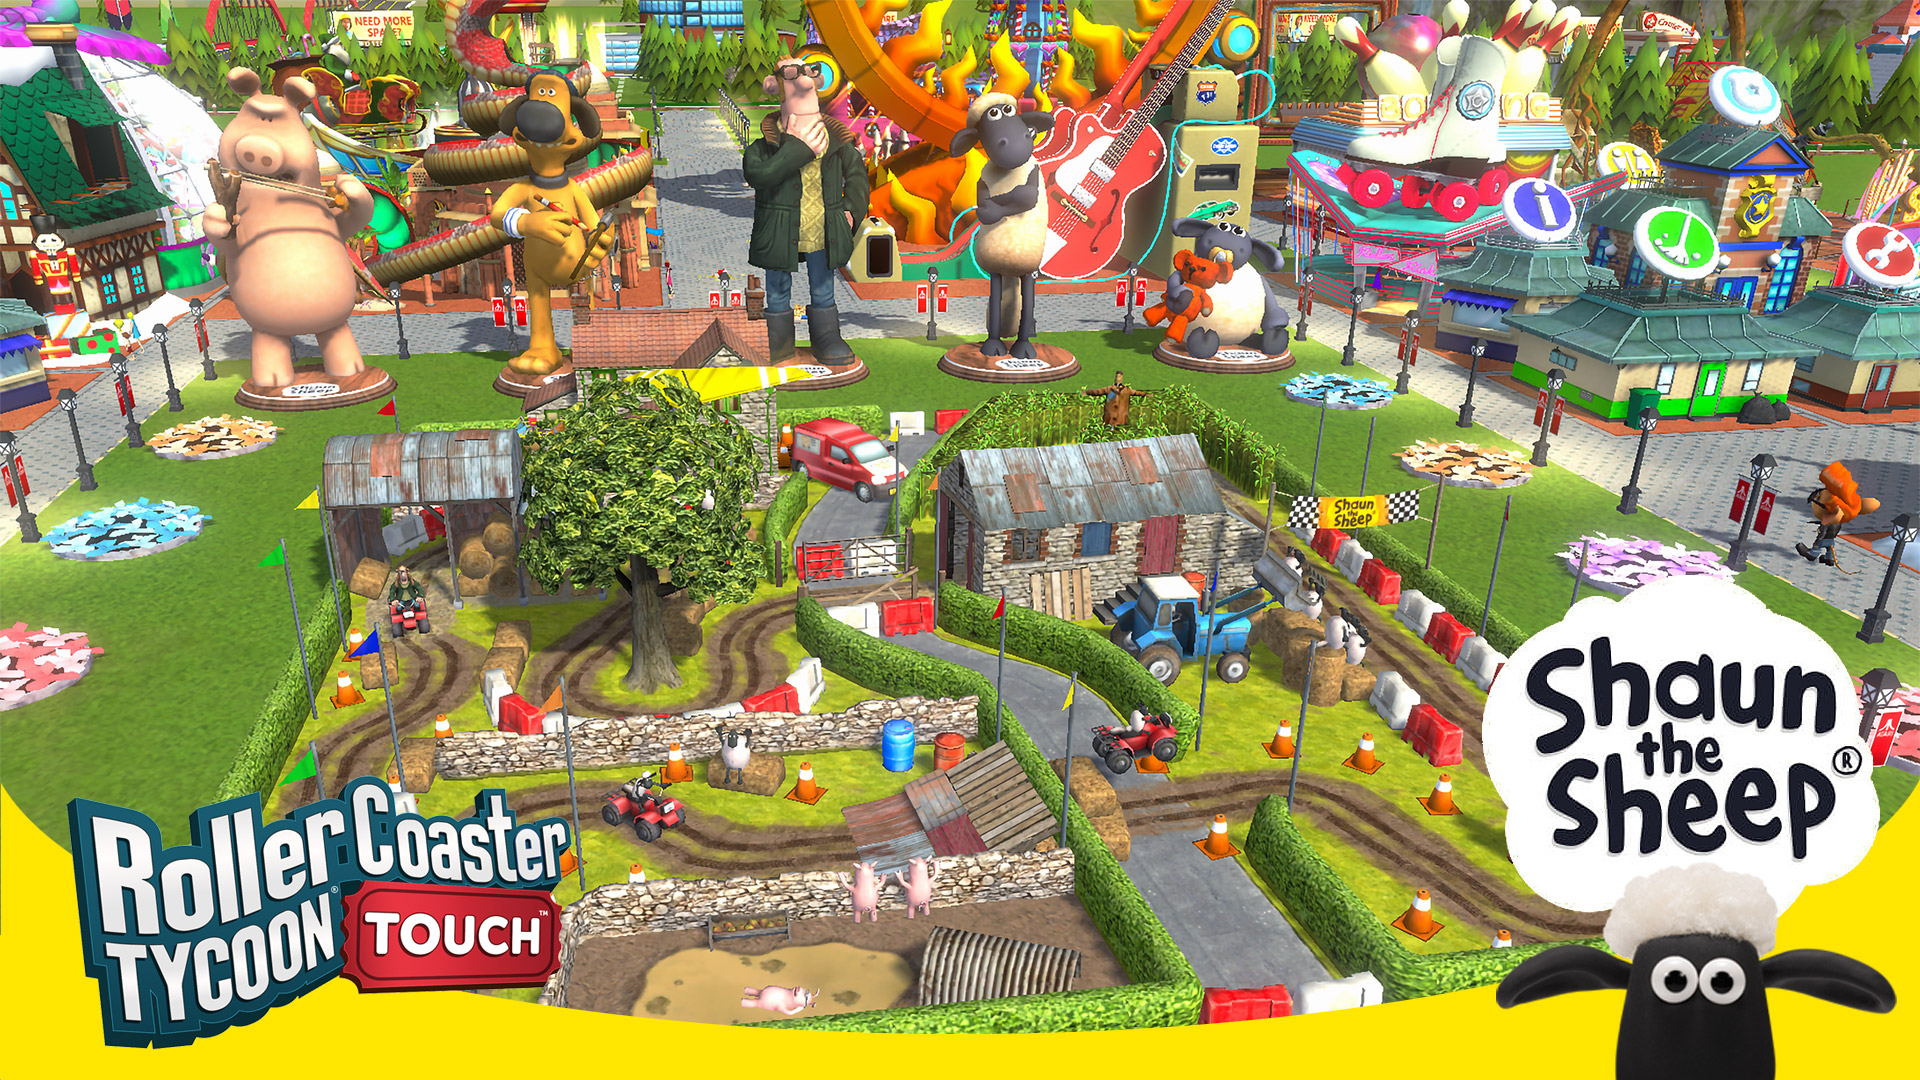 Shaun the Sheep and Friends Arrive in RollerCoaster Tycoon Touch